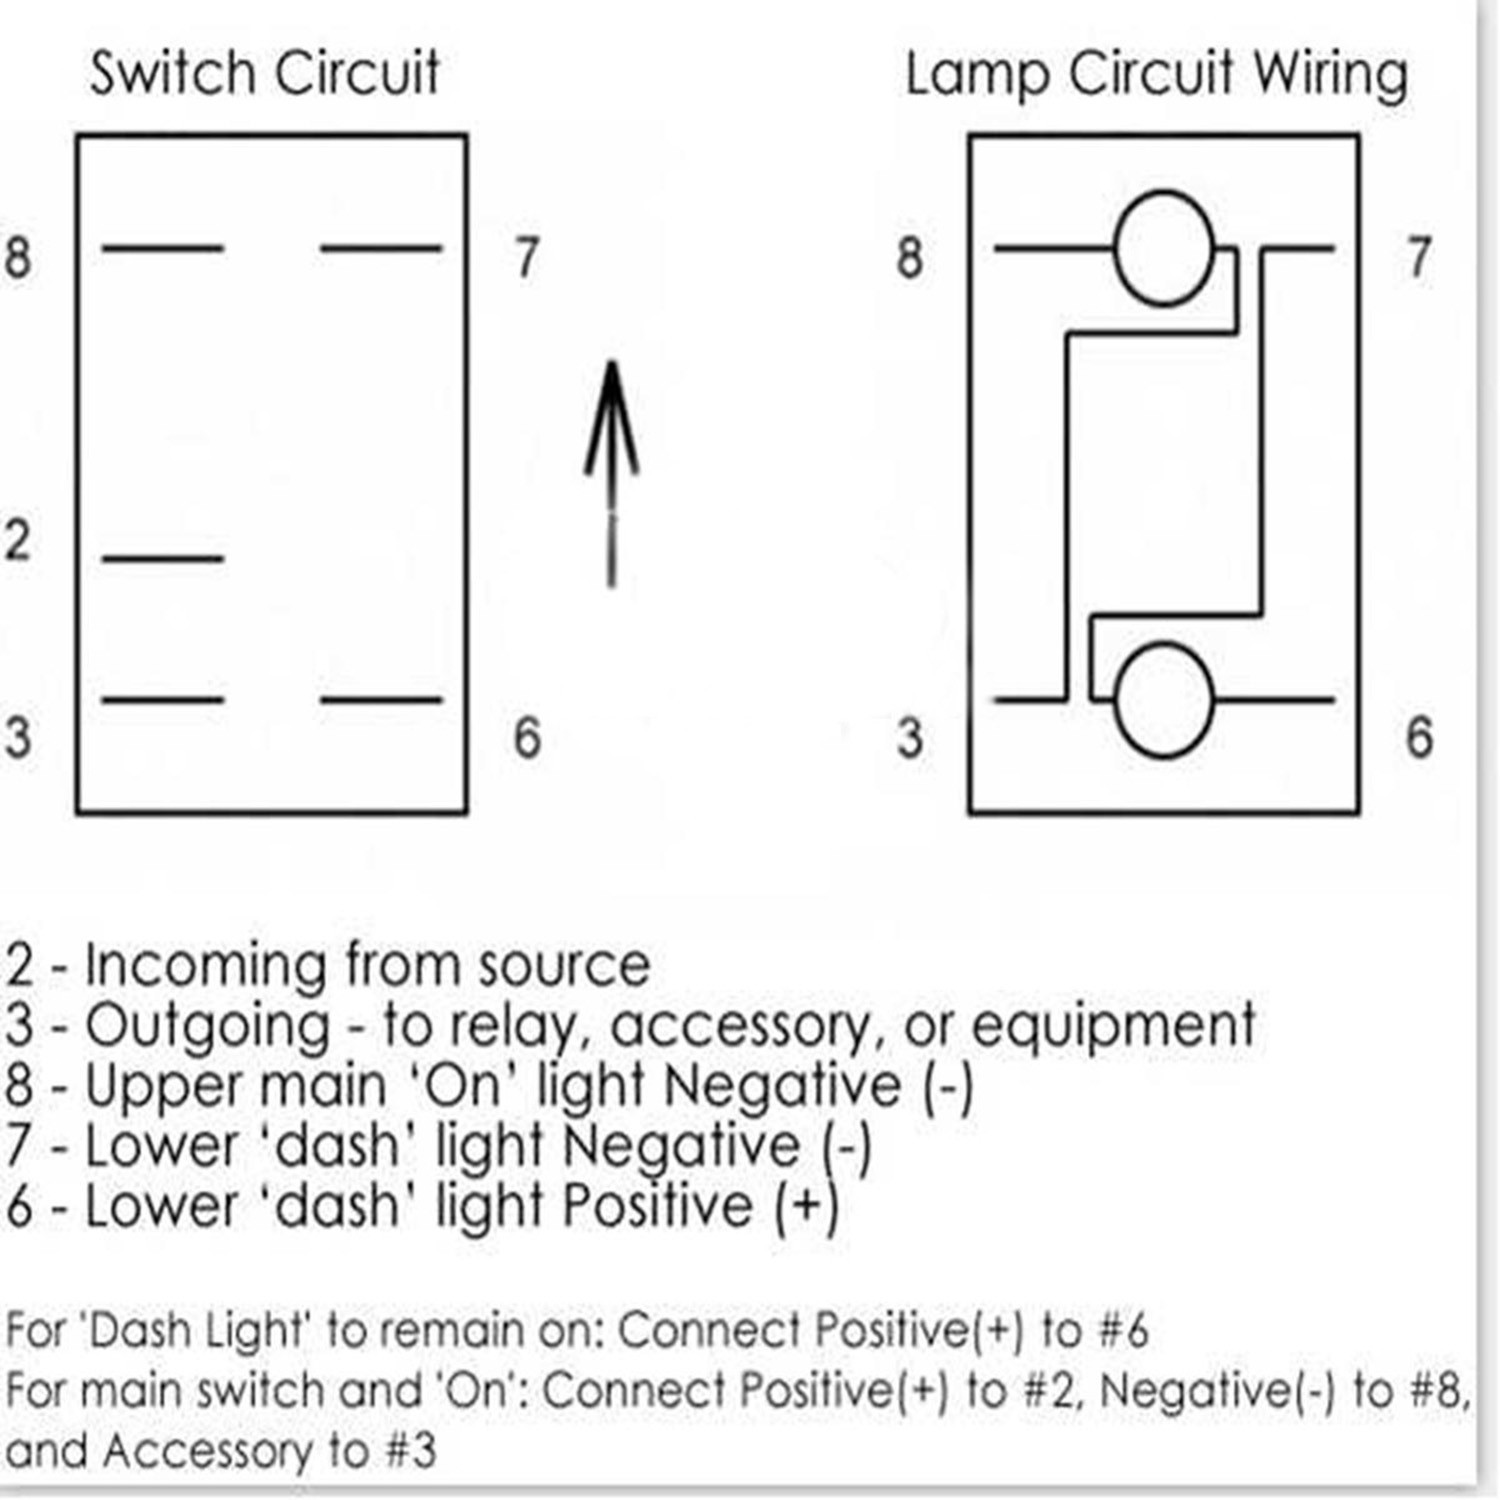 5 Pin Relay Wiring Diagram Driving Lights Image Switch 12v Elegant Simple Forwardreverse Motor Control Question Electrical